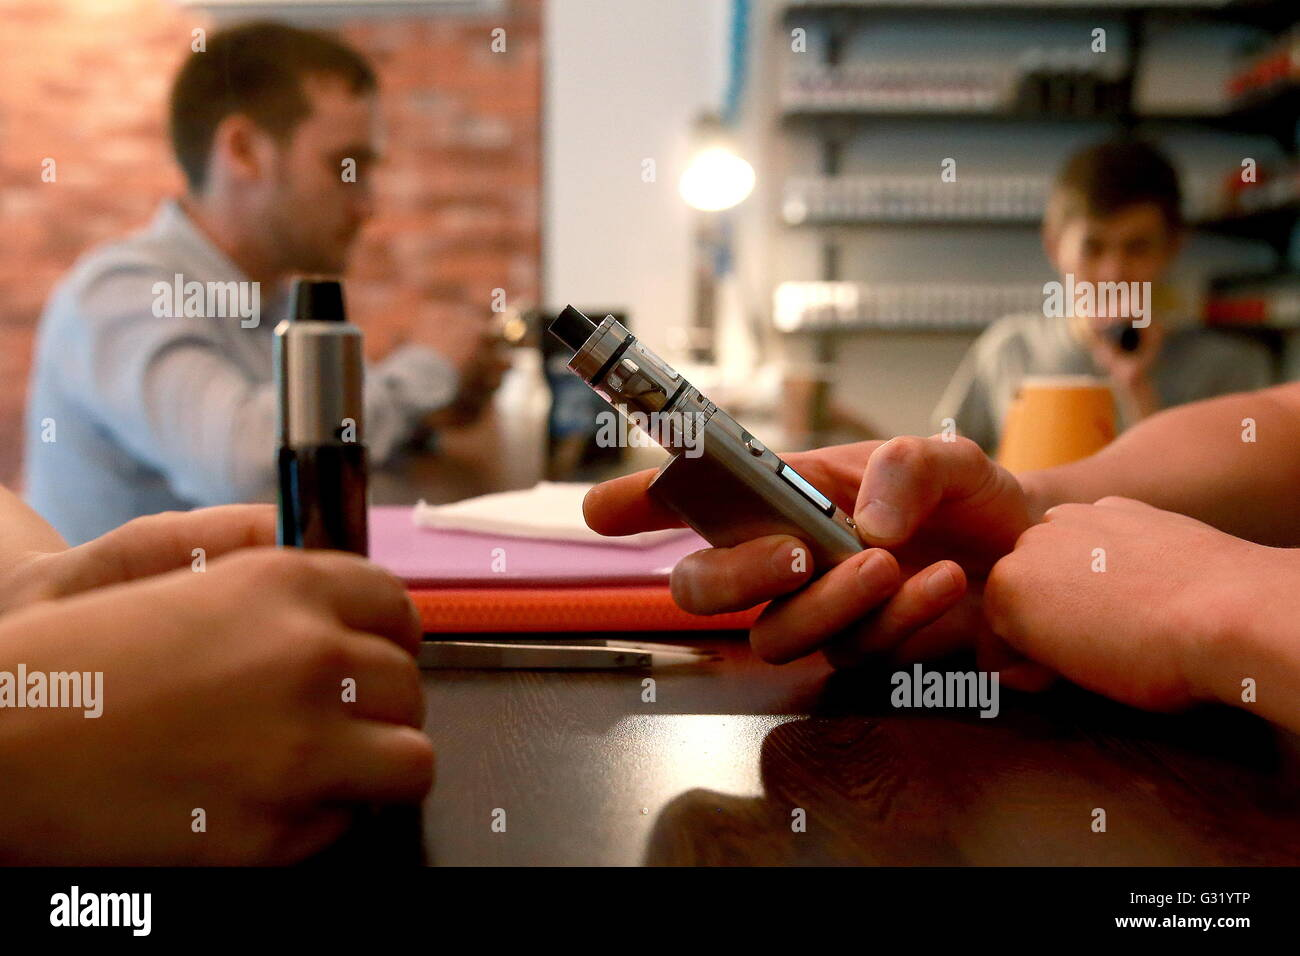 MOSCOW, RUSSIA - JUNE 3, 2016: An e-cigarette box mod at the VapeTeamShop in Moscow. Sergei Fadeichev/TASS - Stock Image